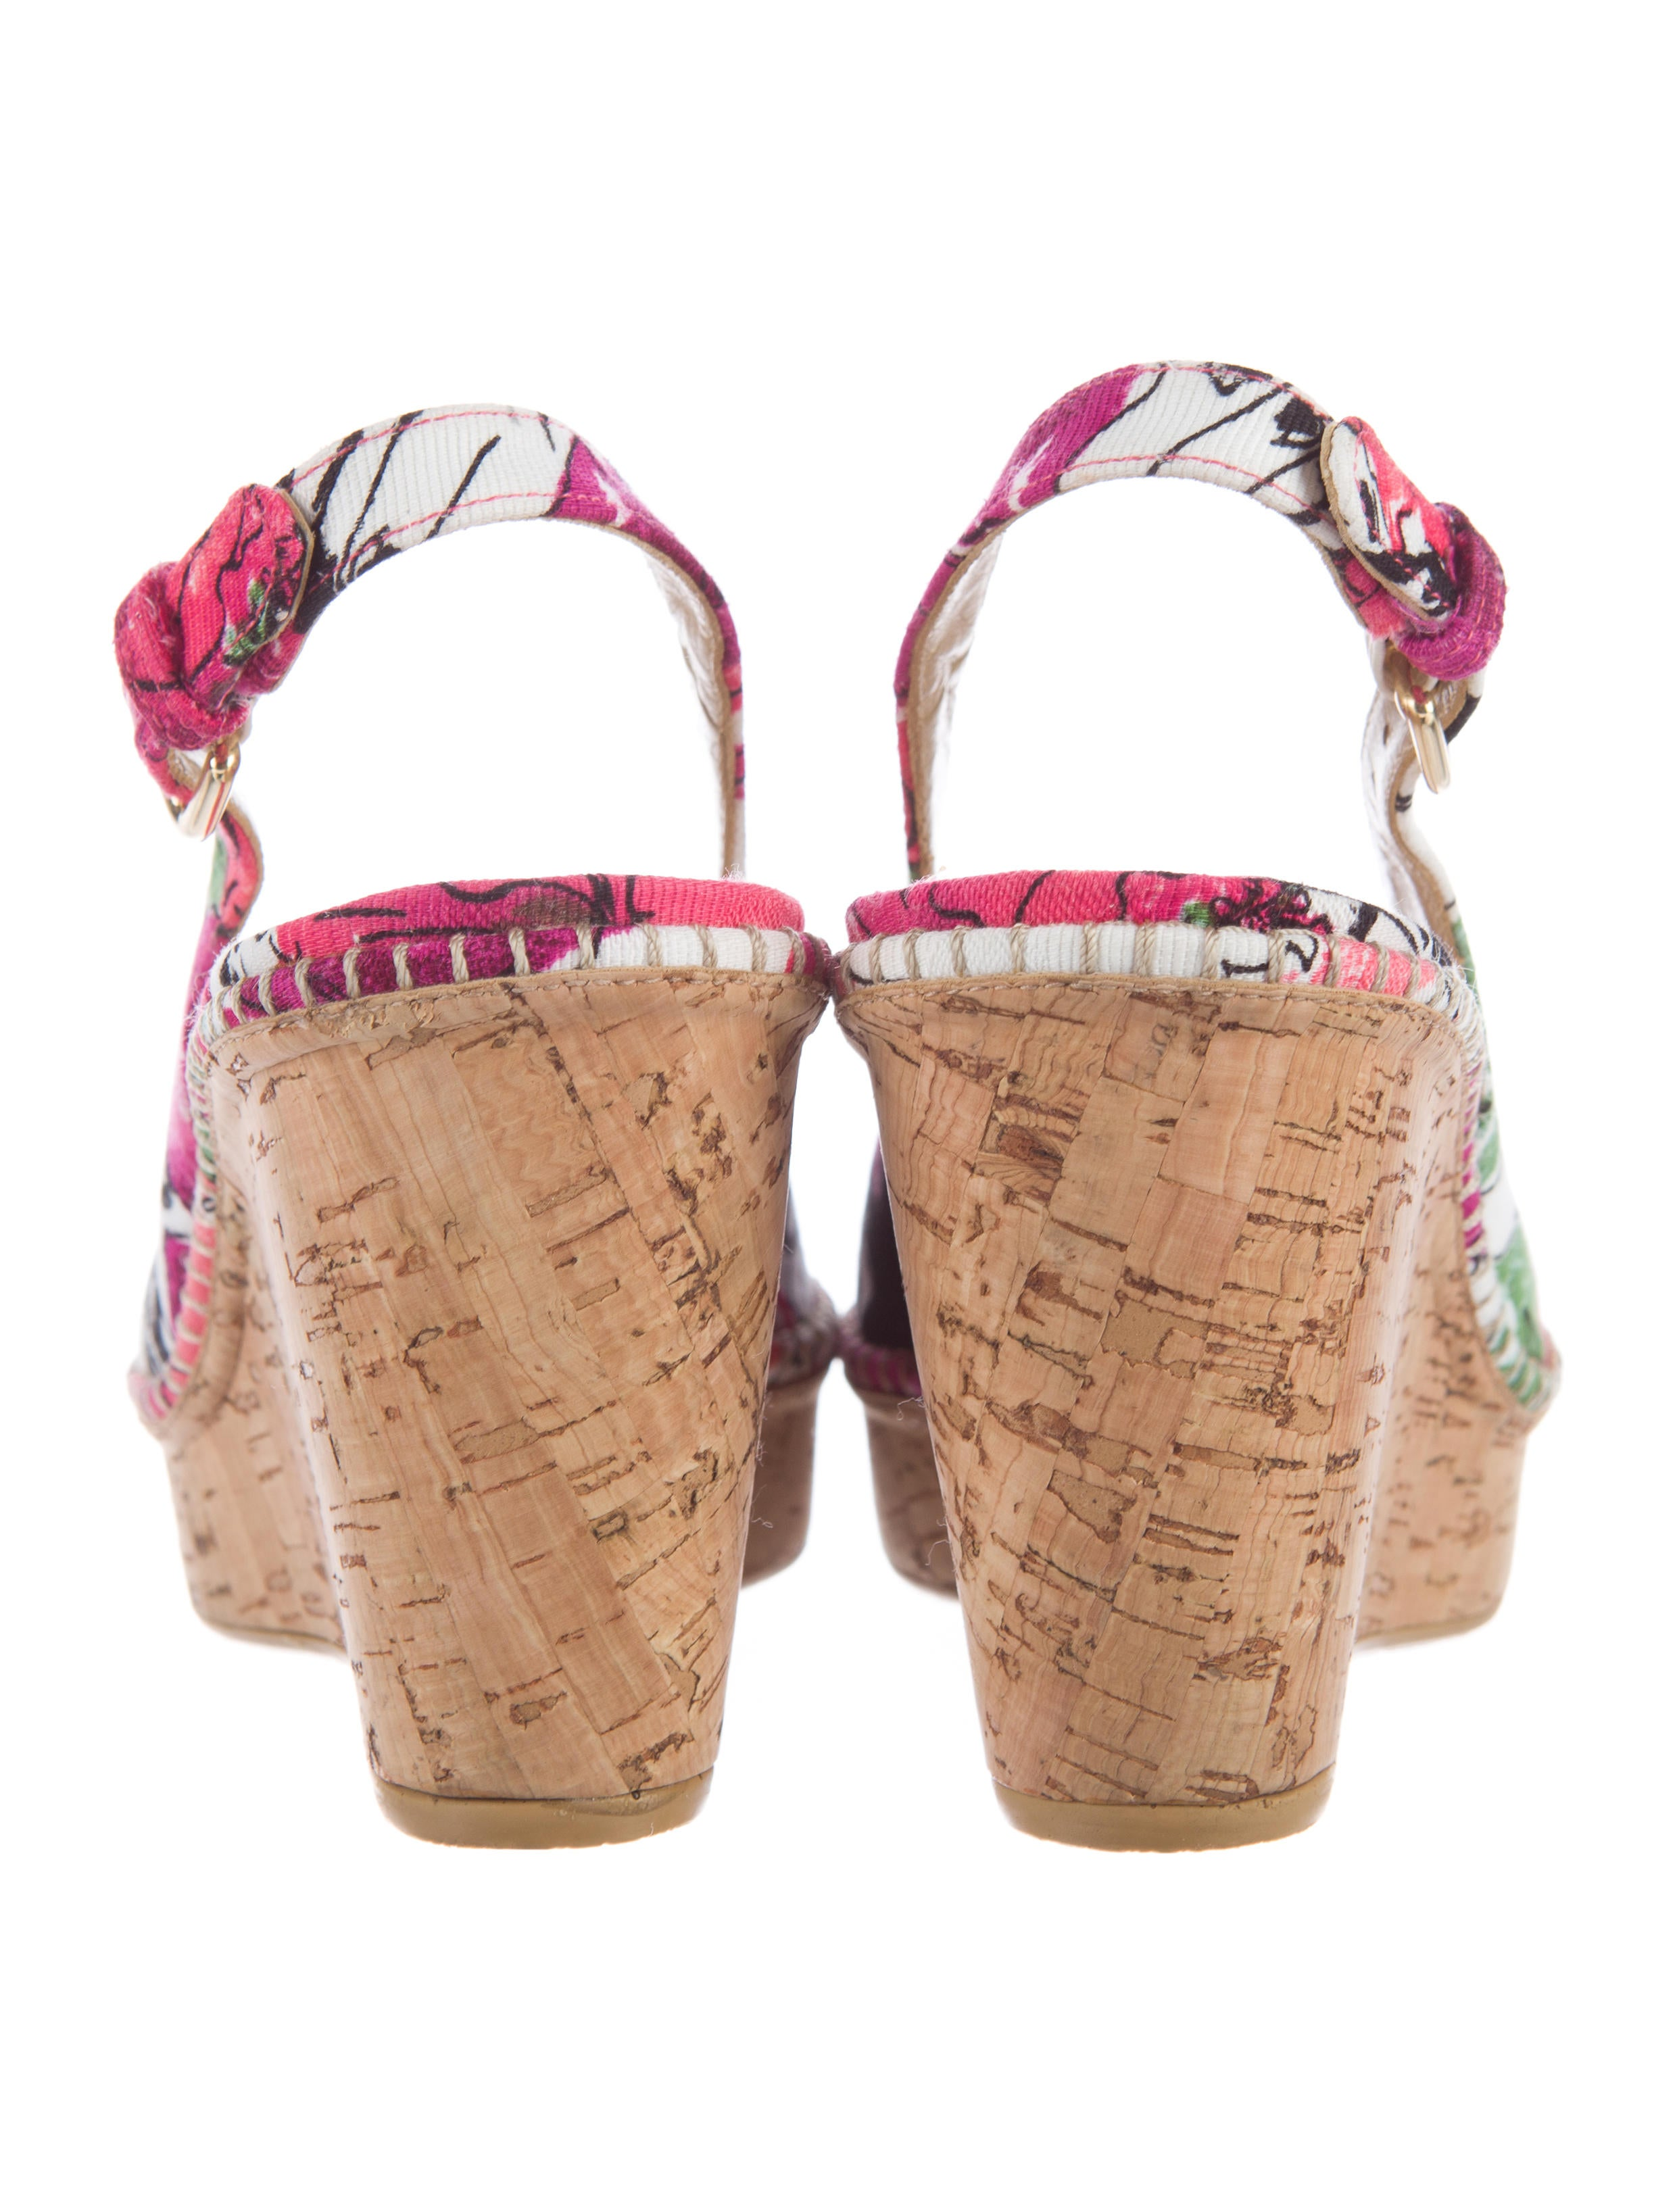 Stuart Weitzman Floral Print Wedge Sandals Shoes